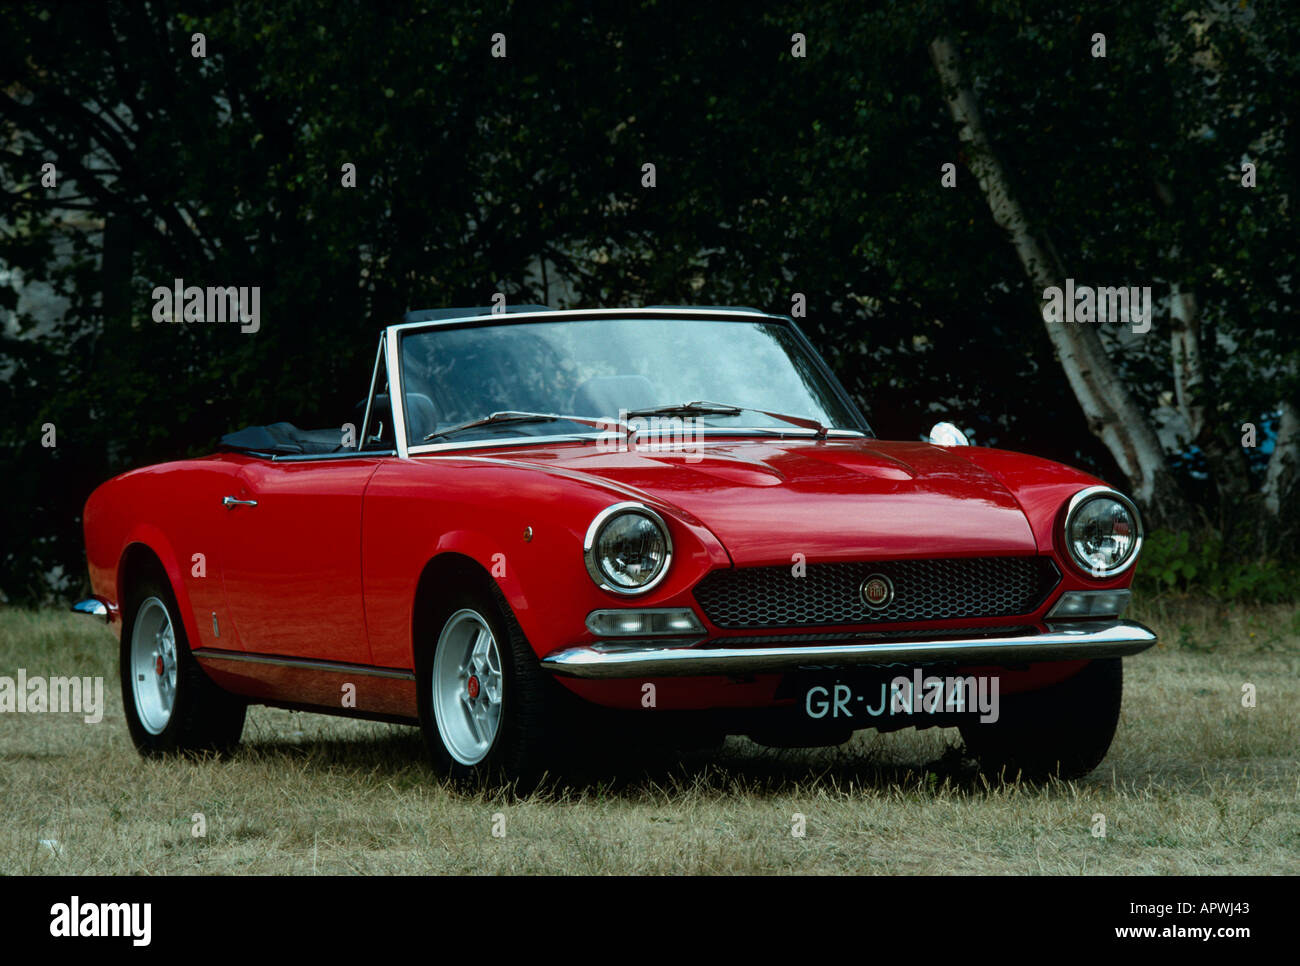 fiat 124 spider built 1966 to 1982 stock photo 5180994 alamy. Black Bedroom Furniture Sets. Home Design Ideas